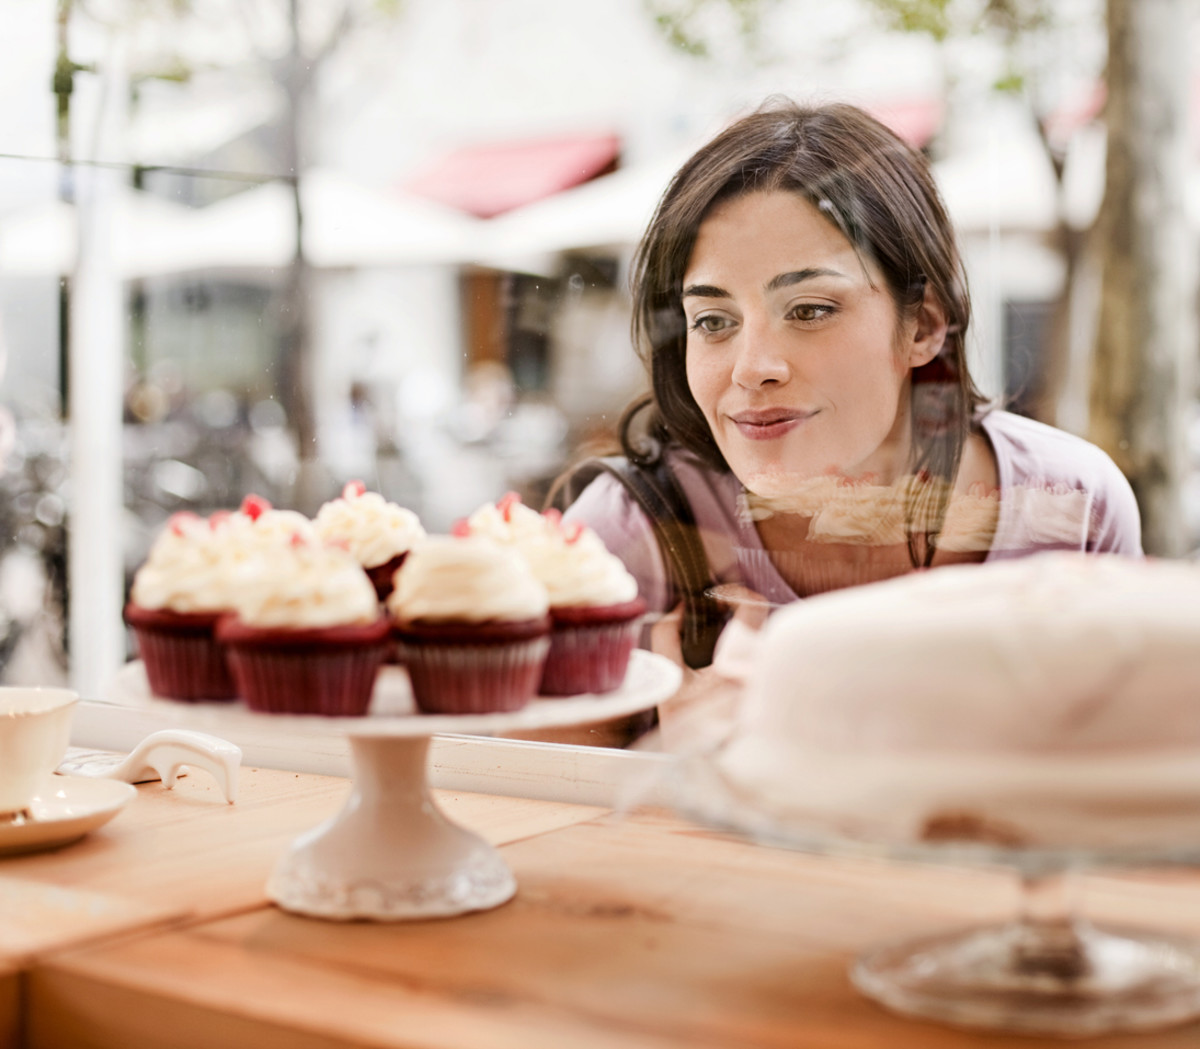 3 Things Your Cravings Are Trying to Tell You